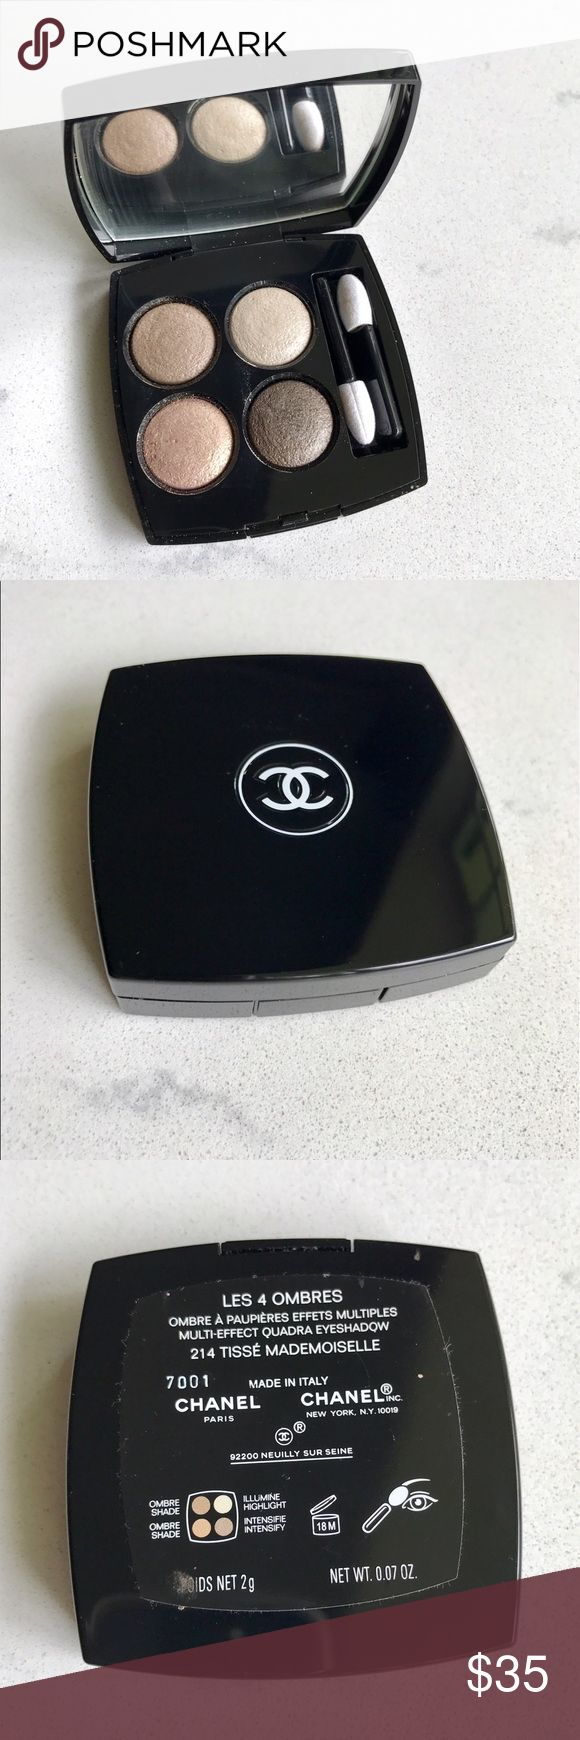 Chanel Les Ombres Eye Quad 214 Tisse Mademoiselle This beautiful Chanel Les 4 Ombres eyeshadow palette is gently used. It is Chanel's baked shadow formula, and the colors form a gradient of warm beige to brown. CHANEL Makeup Eyeshadow